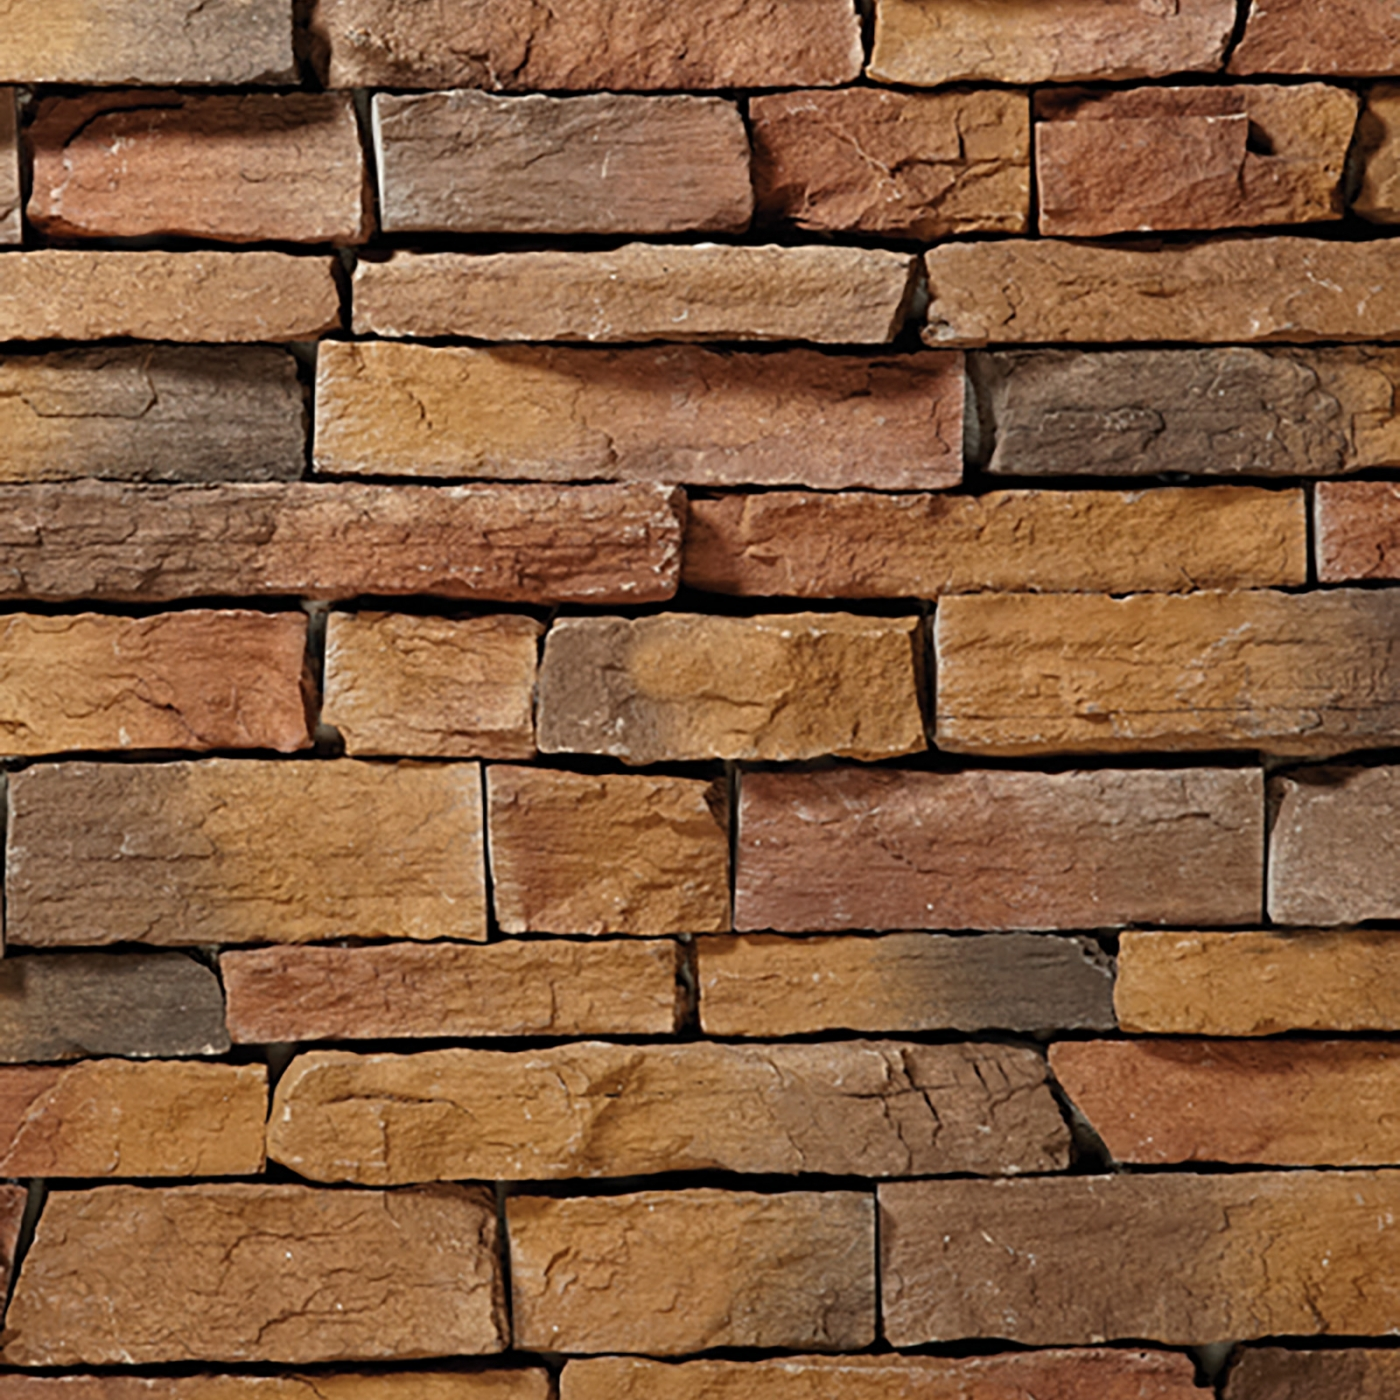 Cessna Tan Southern Ledgestone Stone Veneer from Environmental StoneWorks